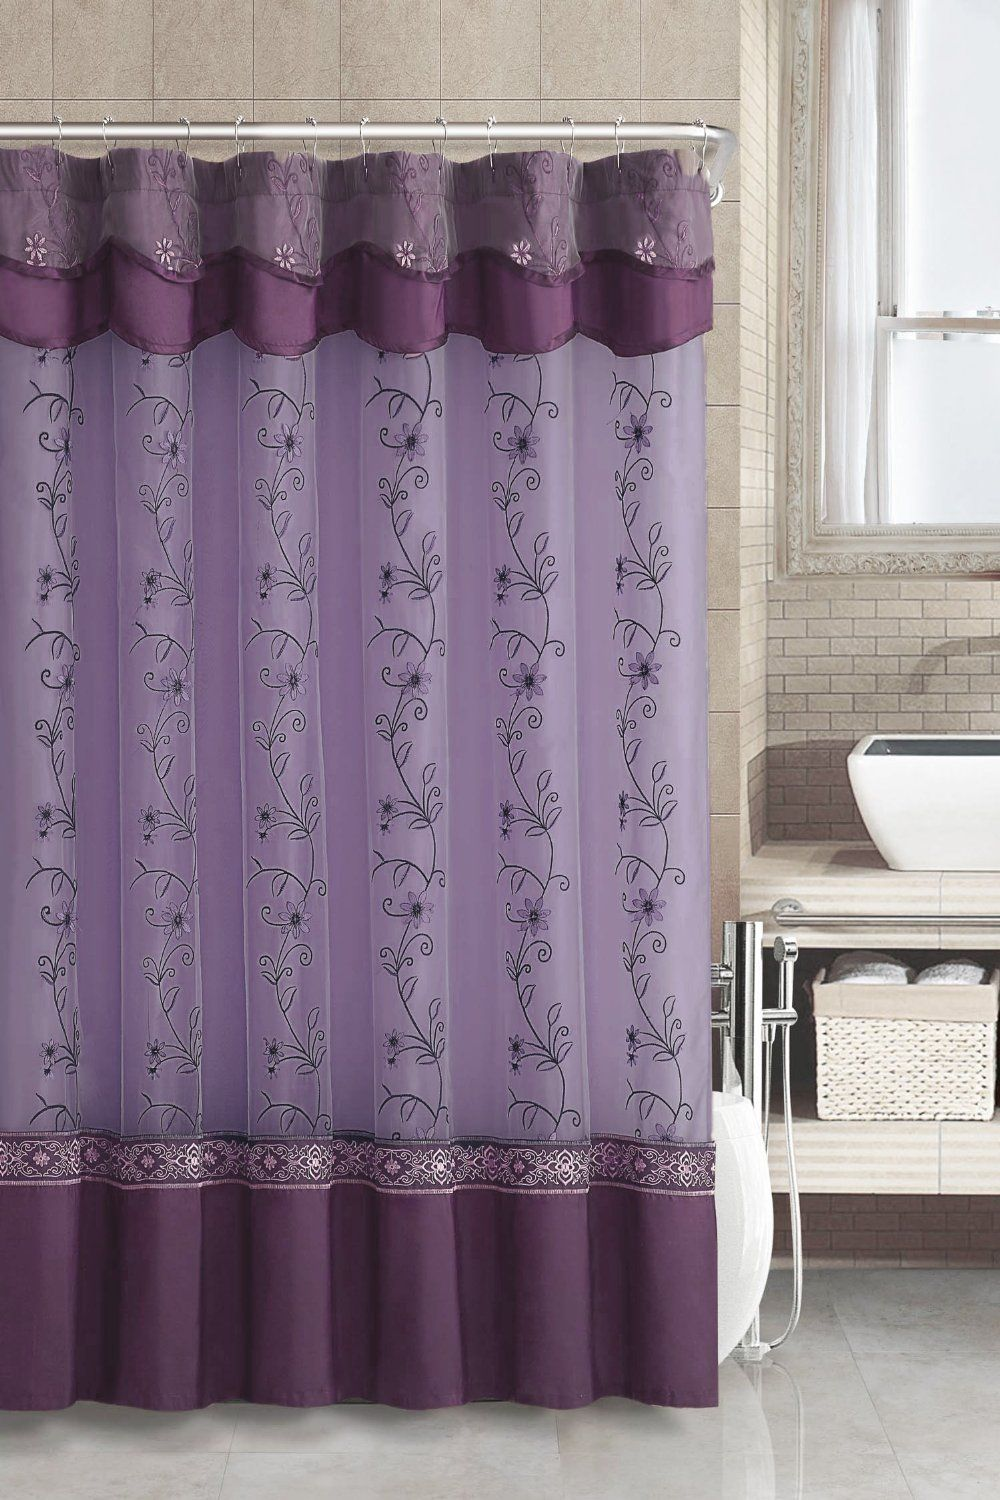 Amazon.com   Two Layered Embroidered Fabric Shower Curtain With Attached  Valance (Purple